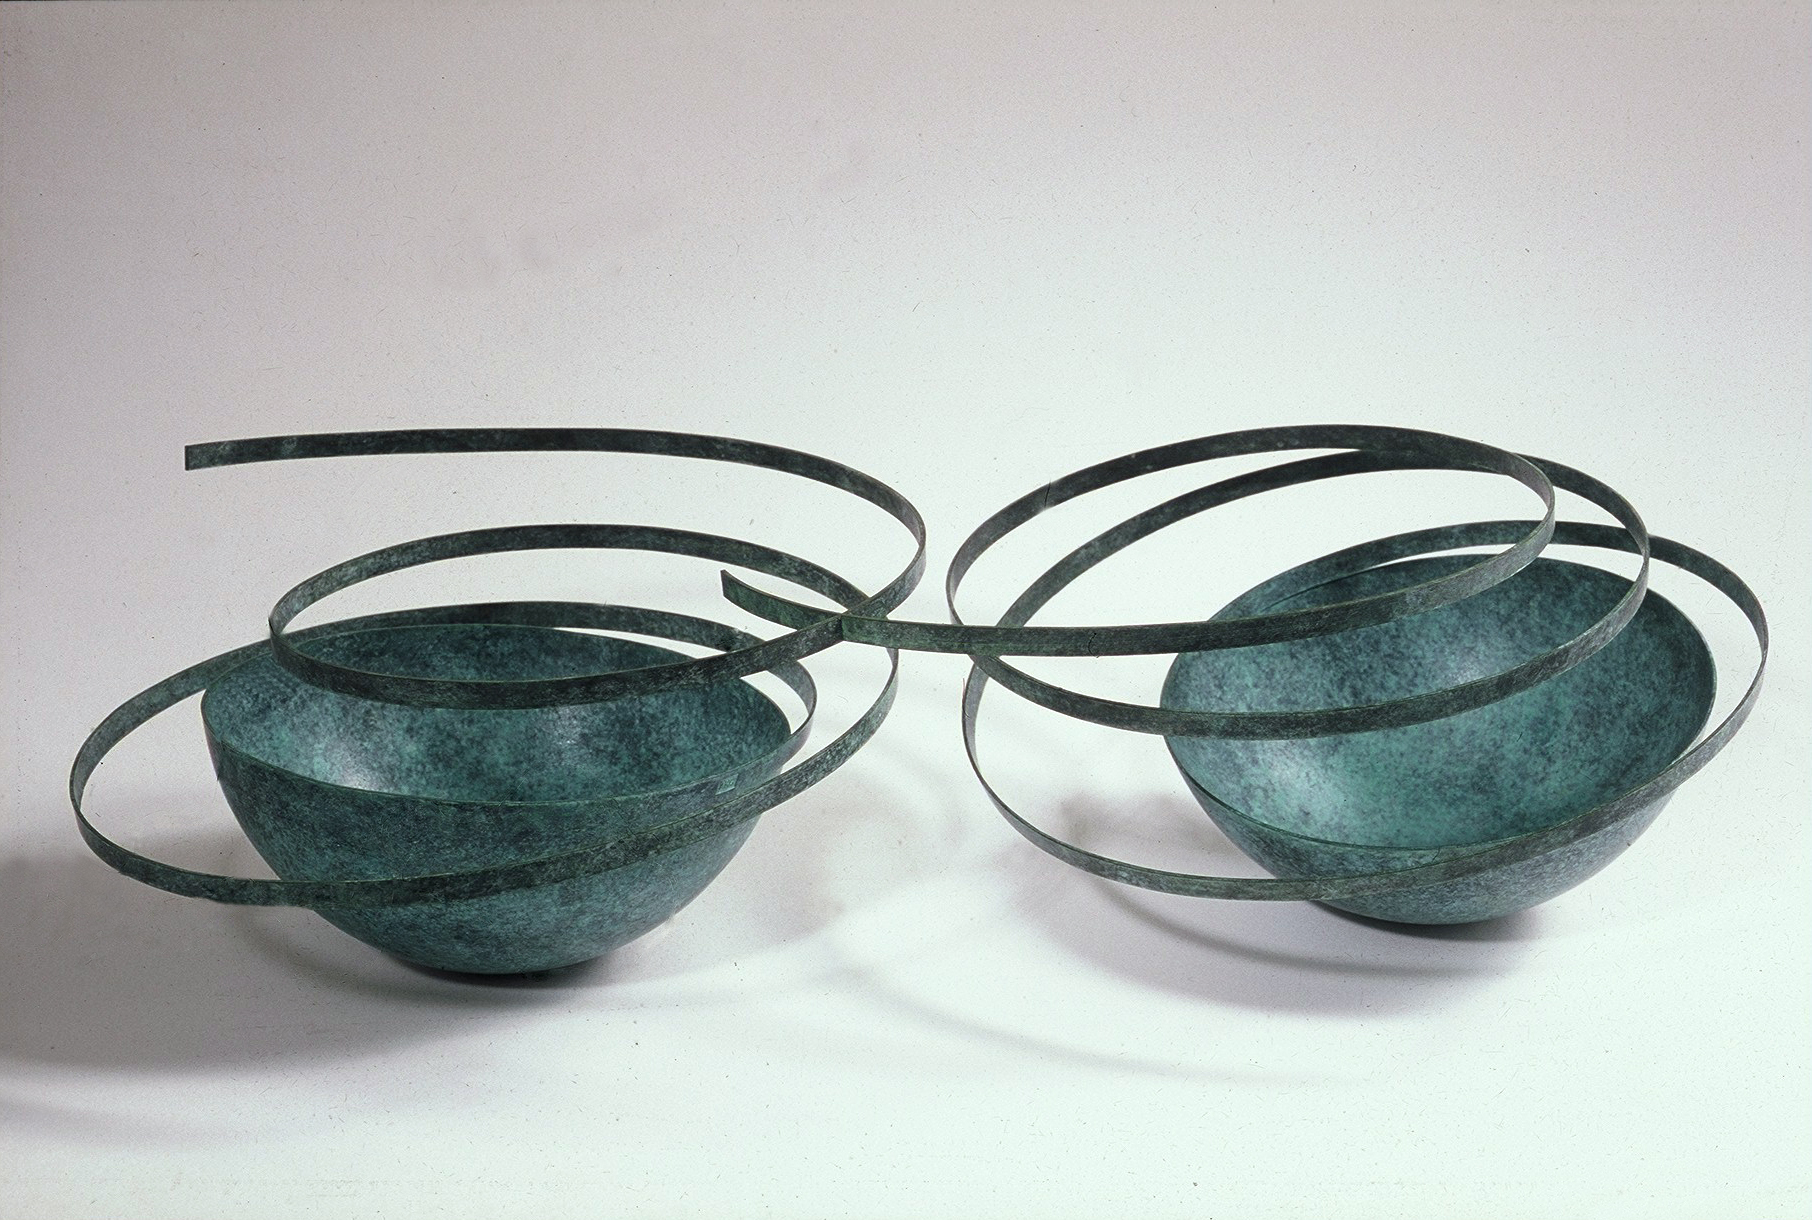 'Connected Bowls' in verdigris copper